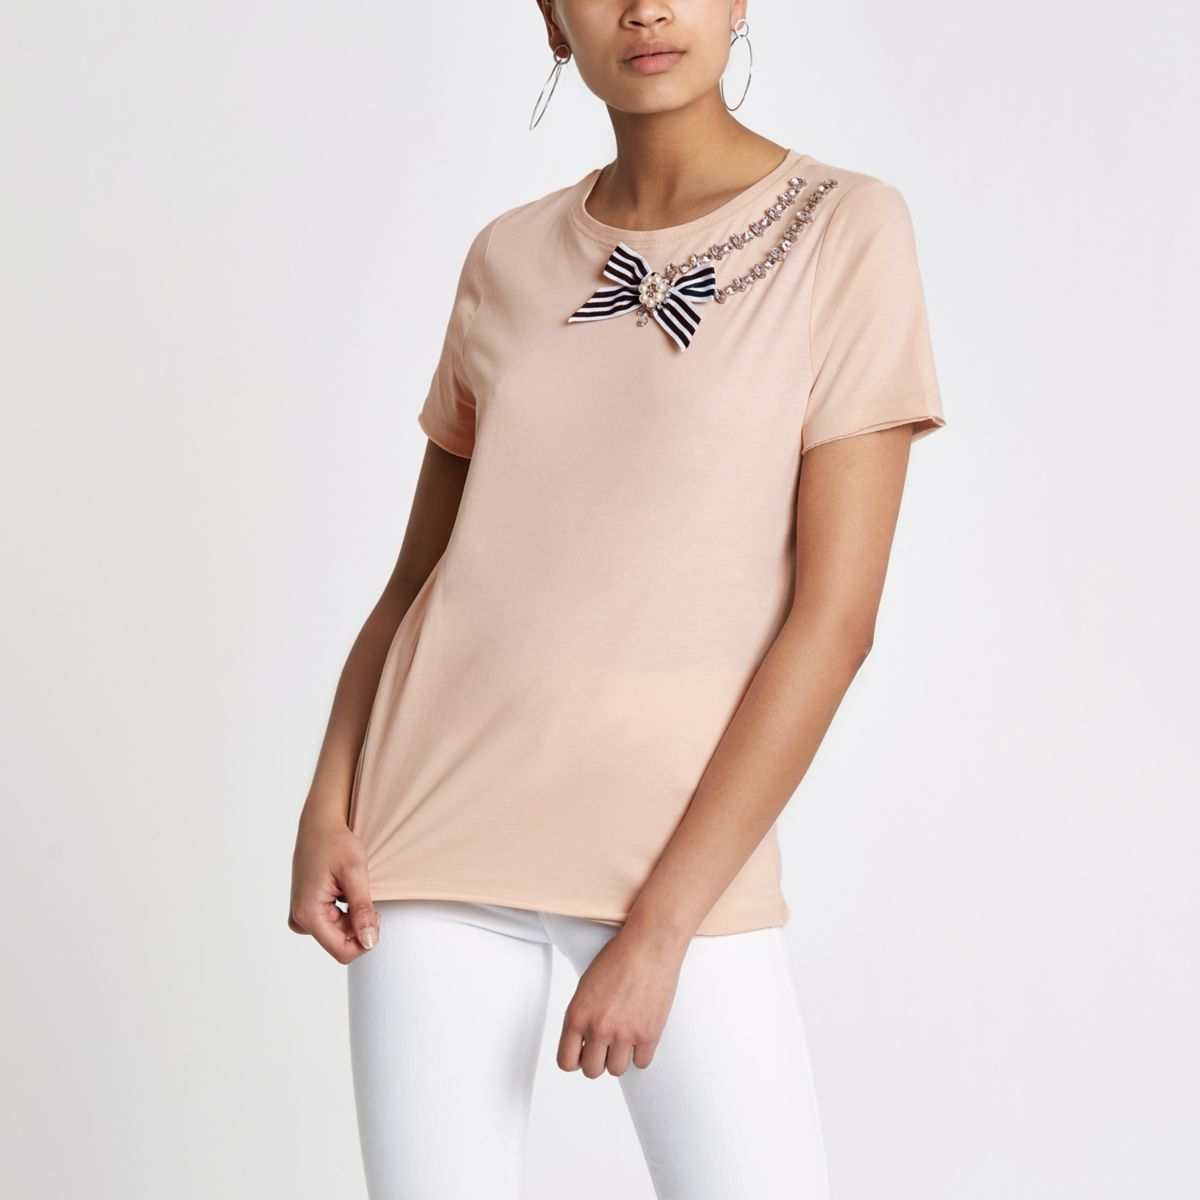 Light pink rhinestone bow trim T-shirt